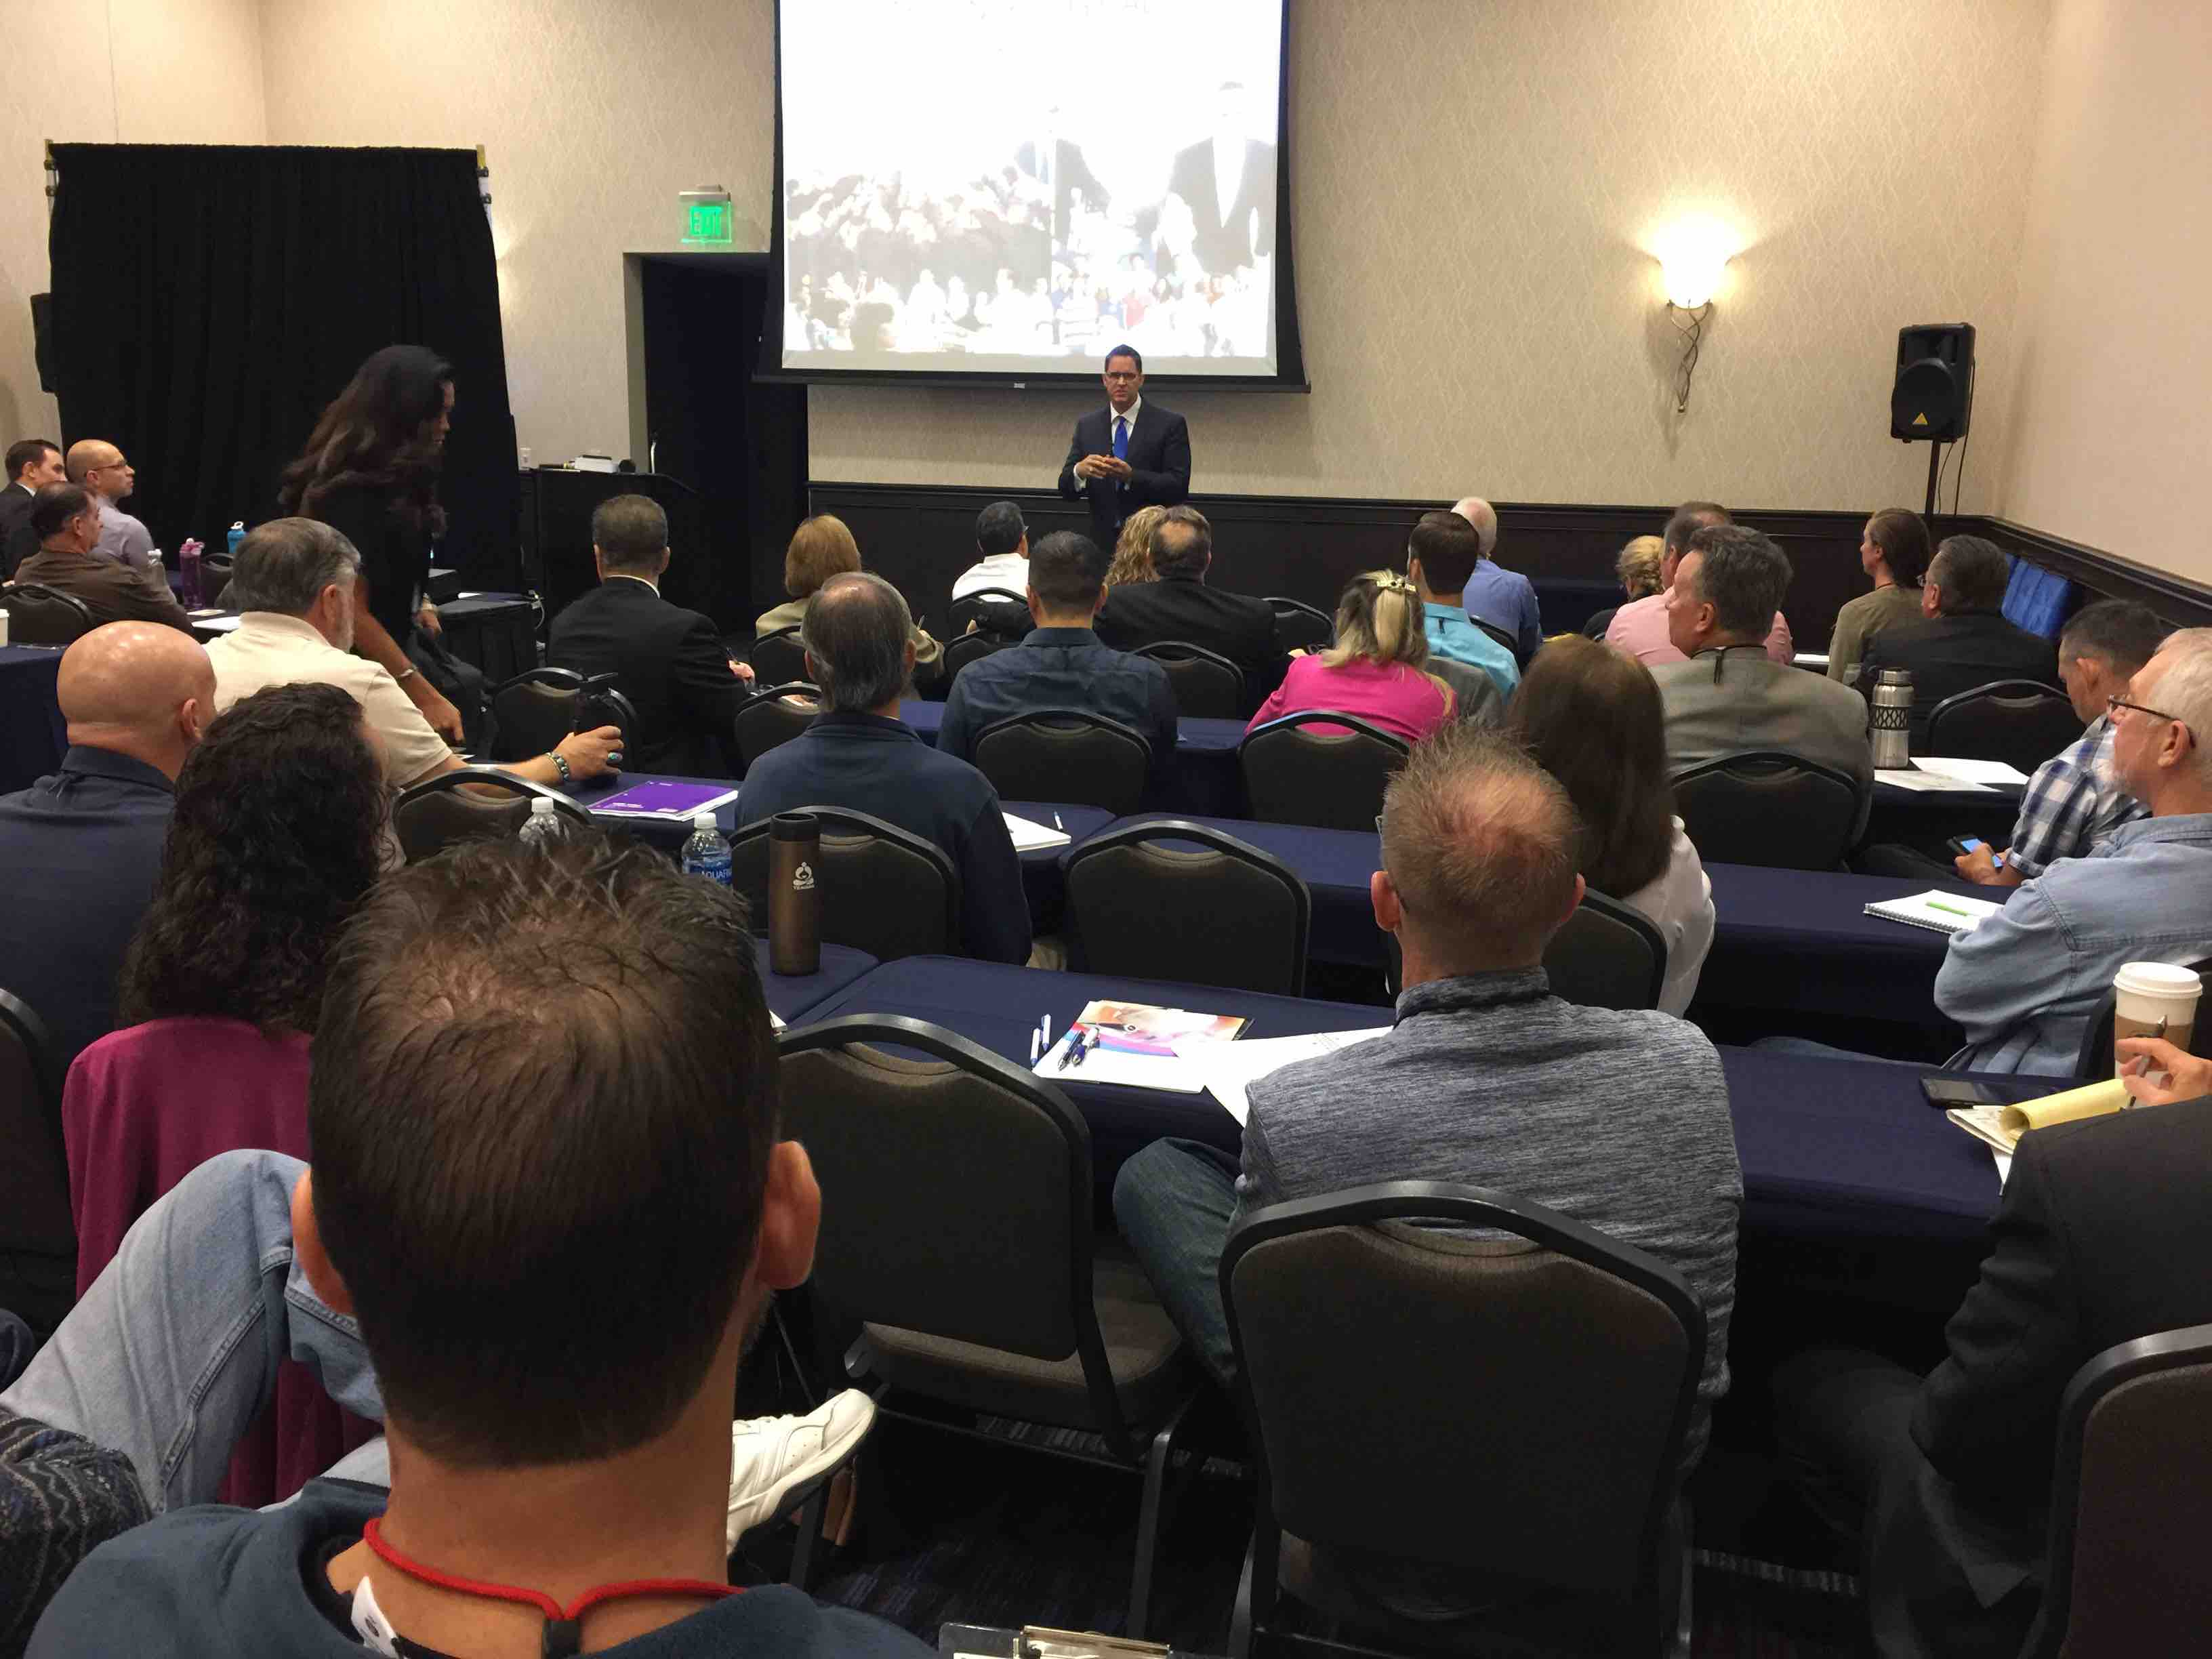 chiropractic_marketing_keynote_speaker_wes_schaeffer.jpg